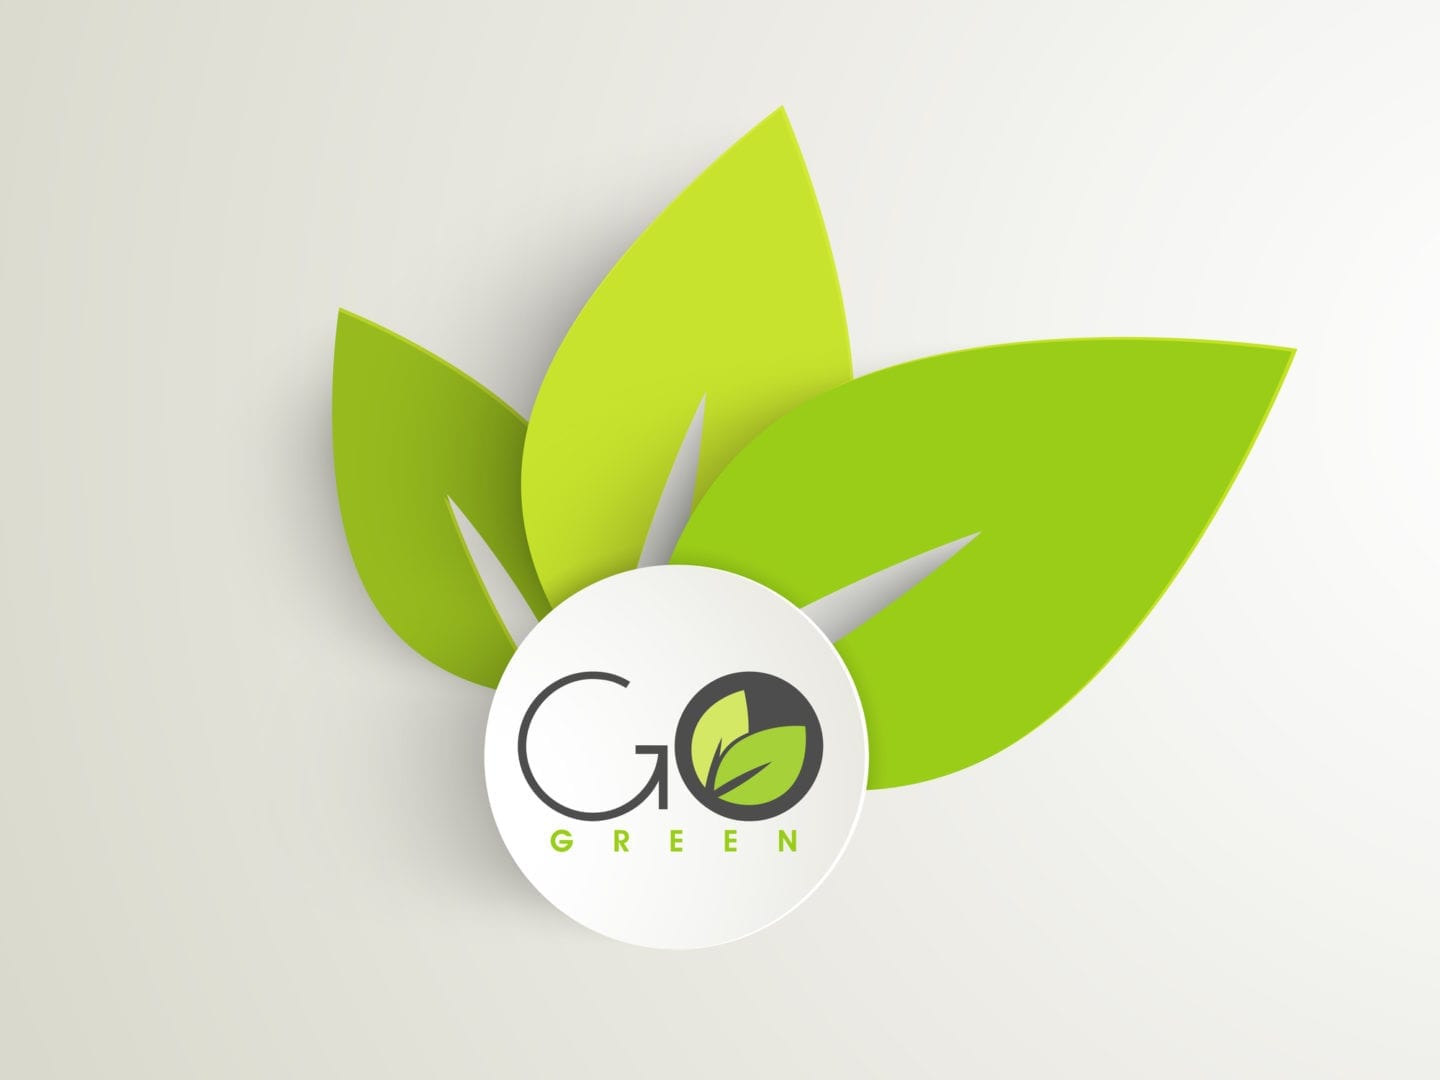 Go Green With The Latest Plumbing Technologies